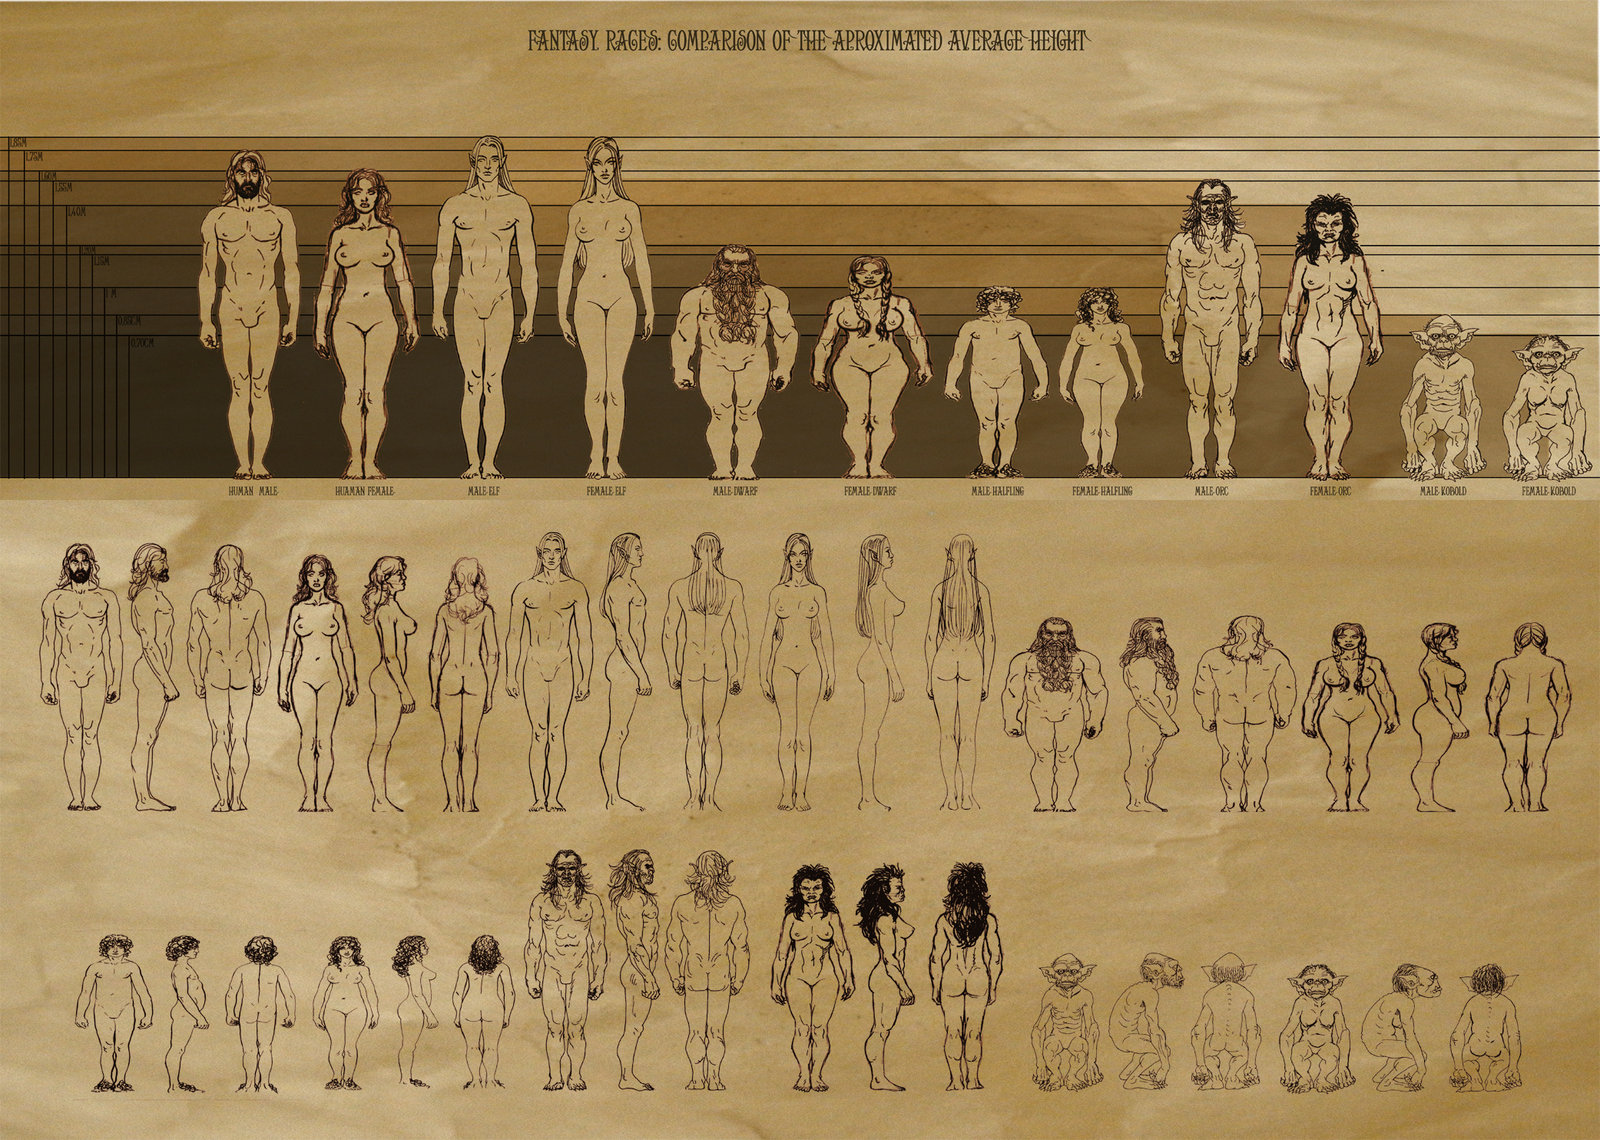 http://blogs.perl.org/users/byterock/RPG_Races_proportions_by_Artigas.jpg